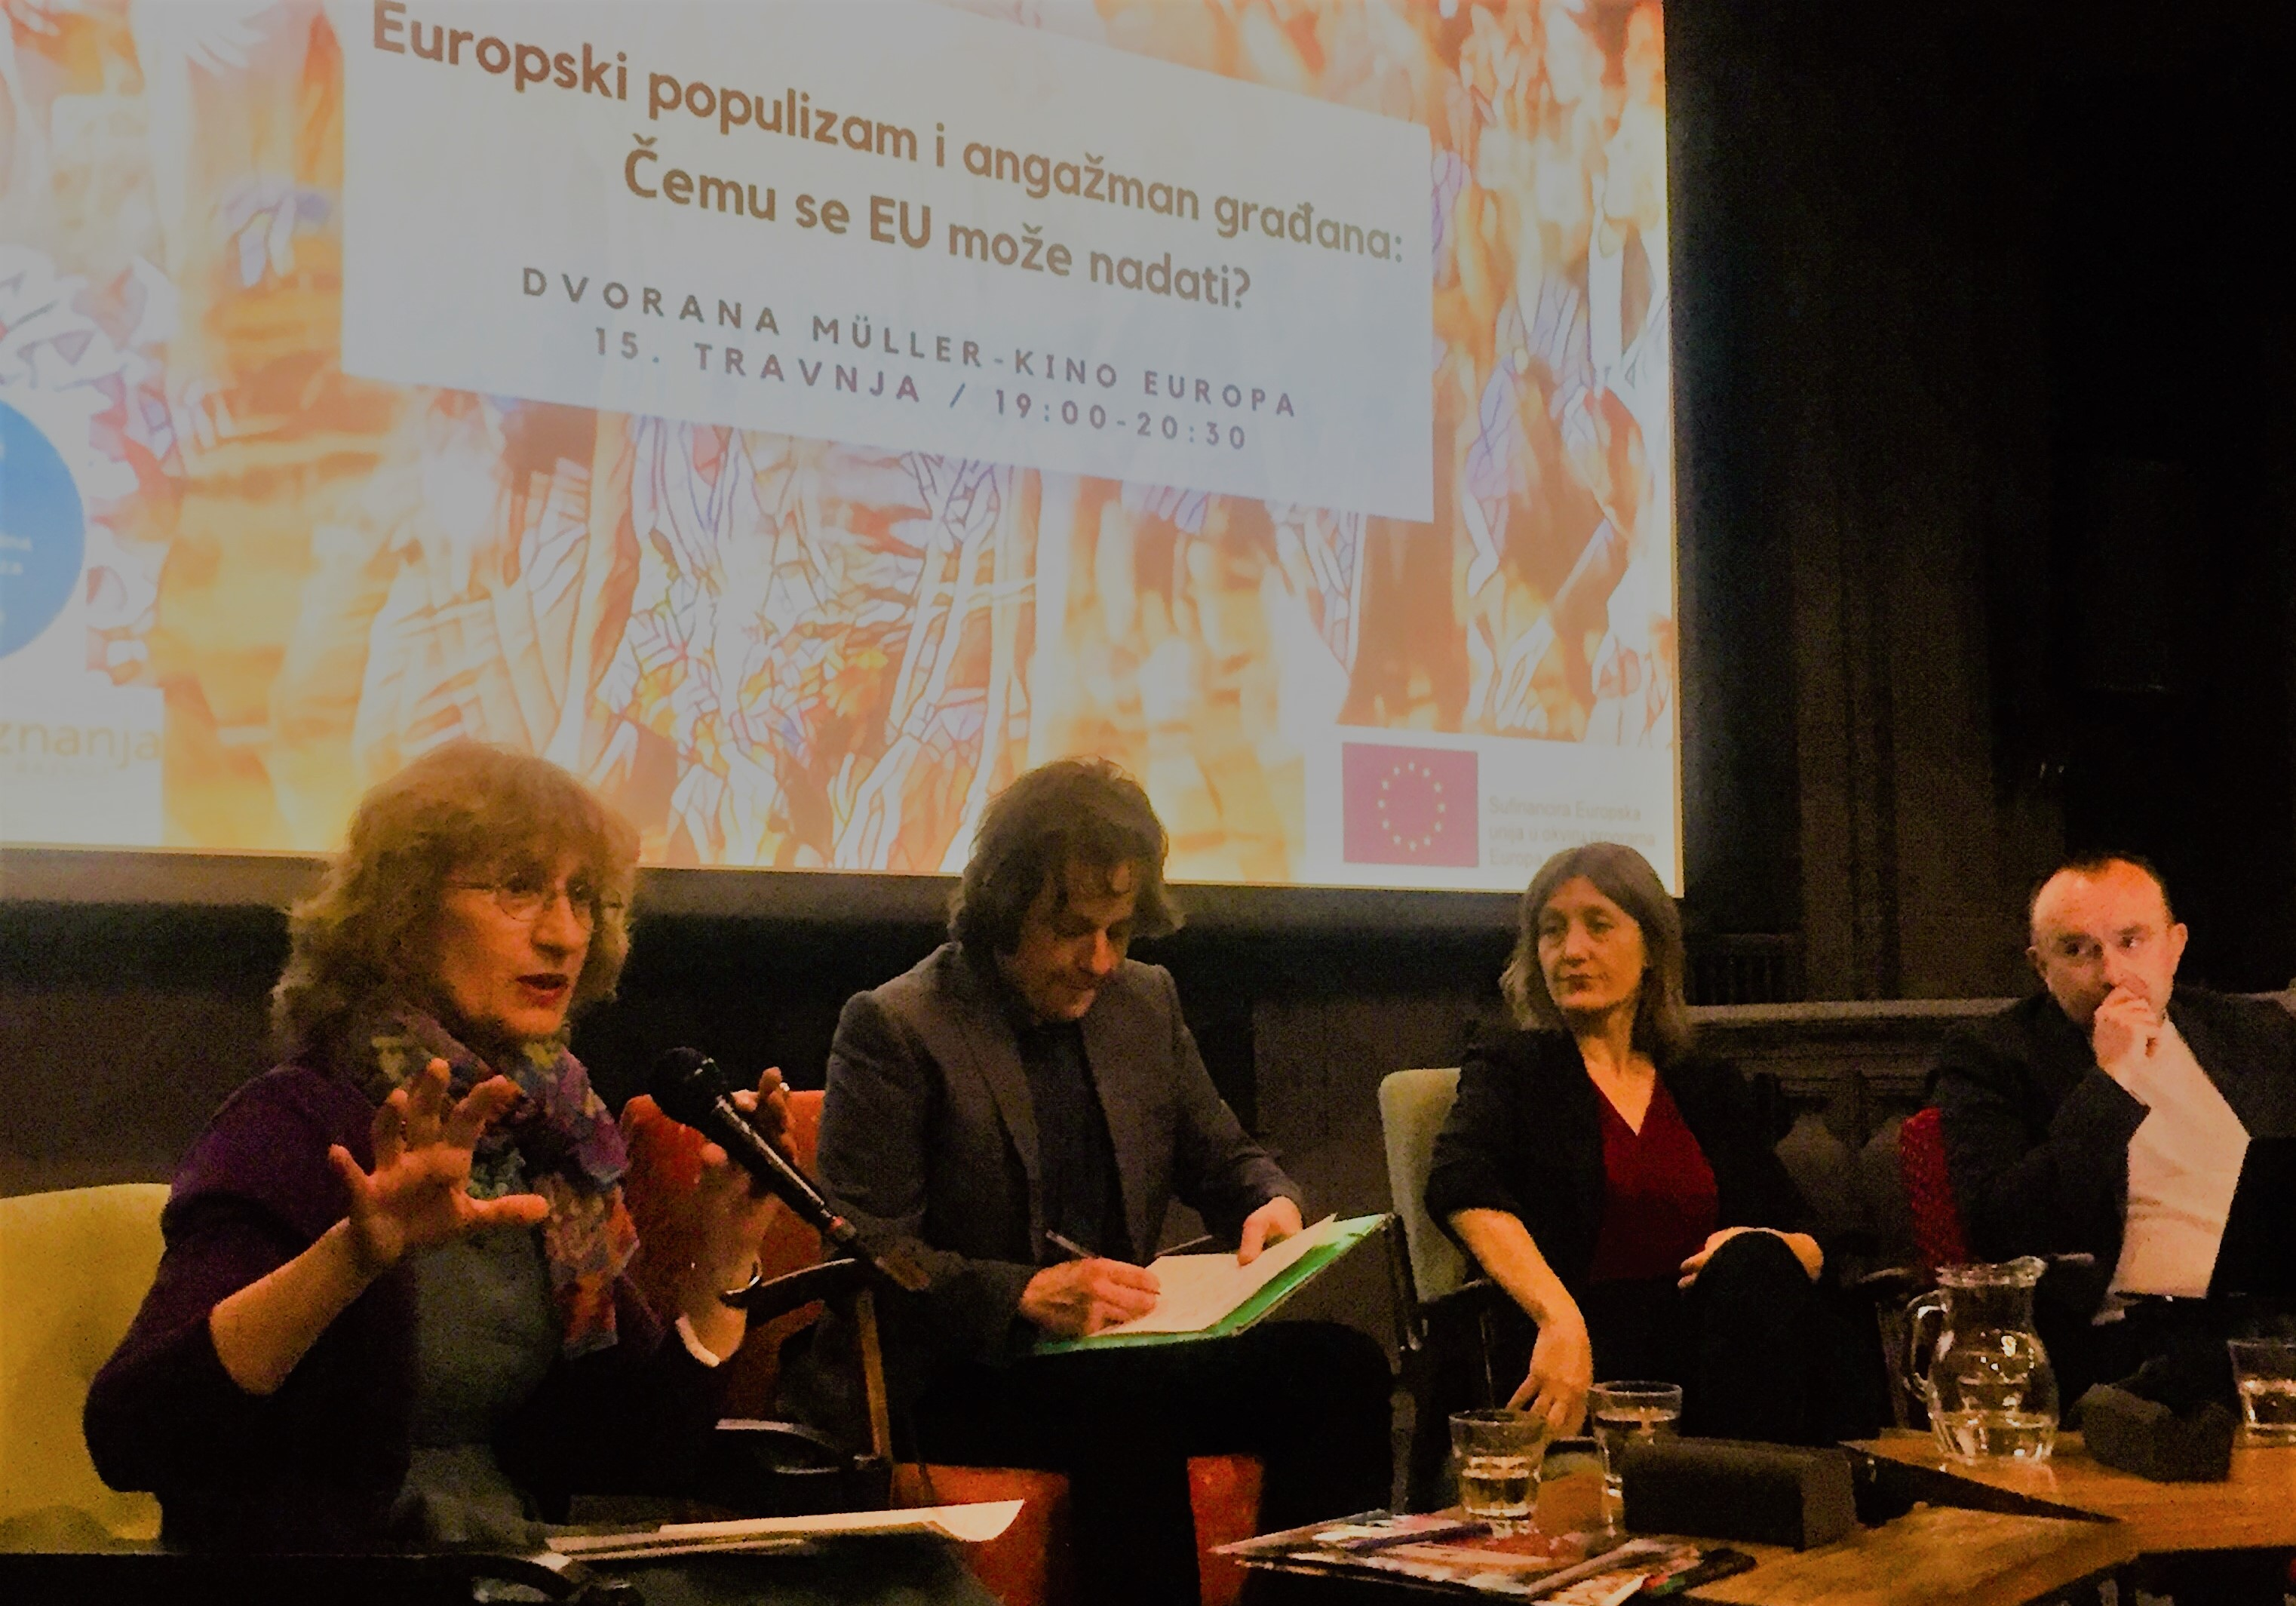 Anna Krasteva took part at the public debate on populism and civic activism in the most vibrant cultural place in Zagreb (Cinema Europe) on April 15, 2019.